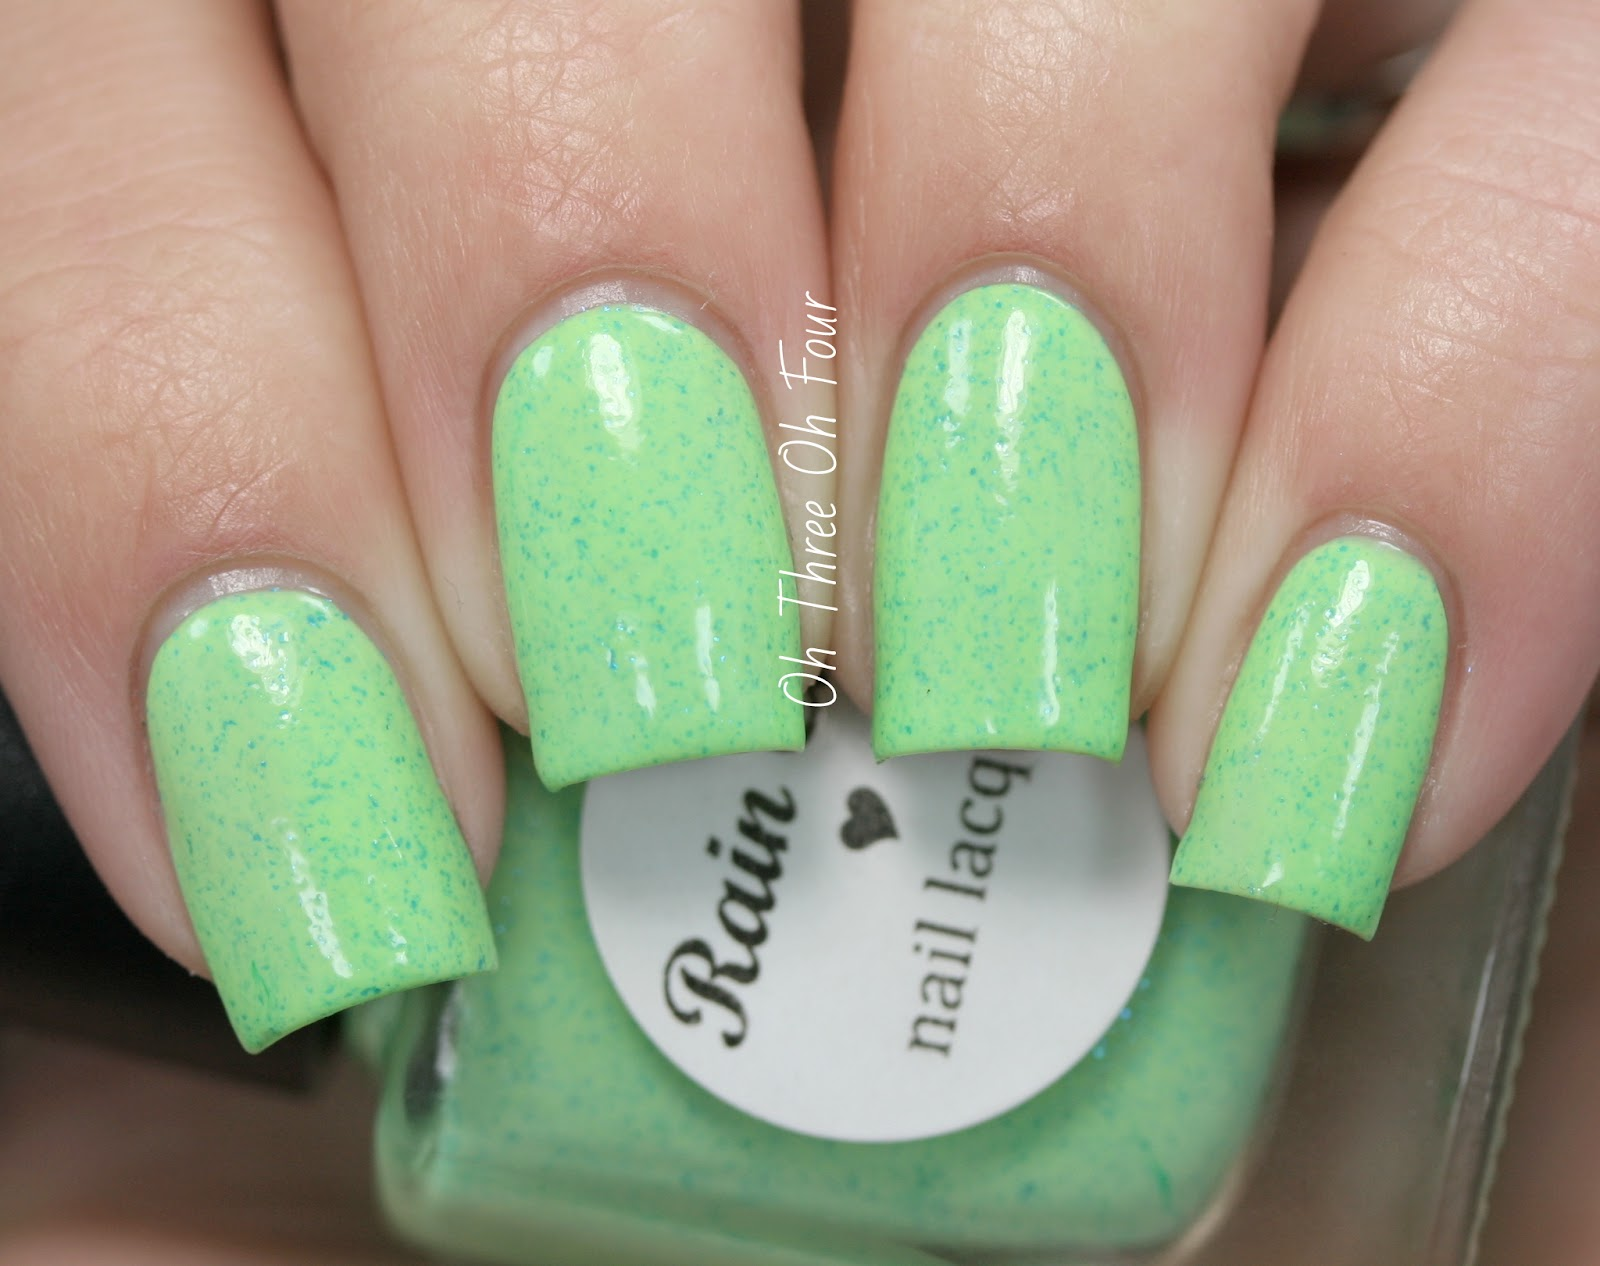 Rain City Lacquer Green Grotto swatch